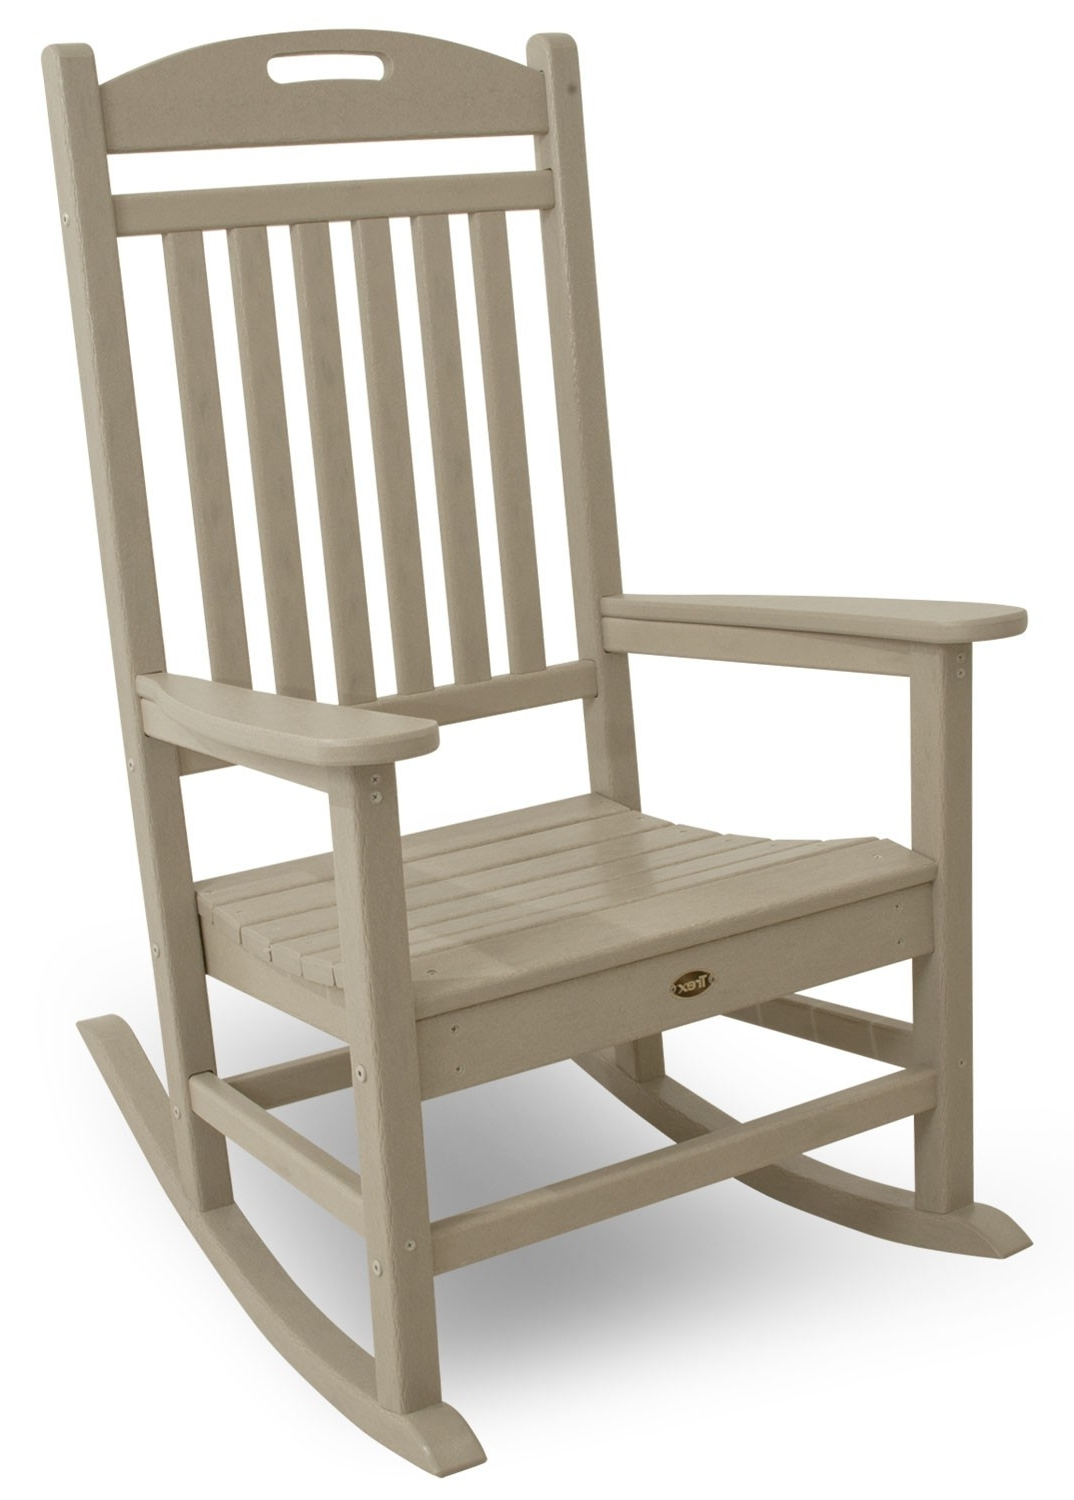 Most Popular Unique Outdoor Rocking Chairs Throughout Yacht Club Rocking Chair (View 3 of 15)